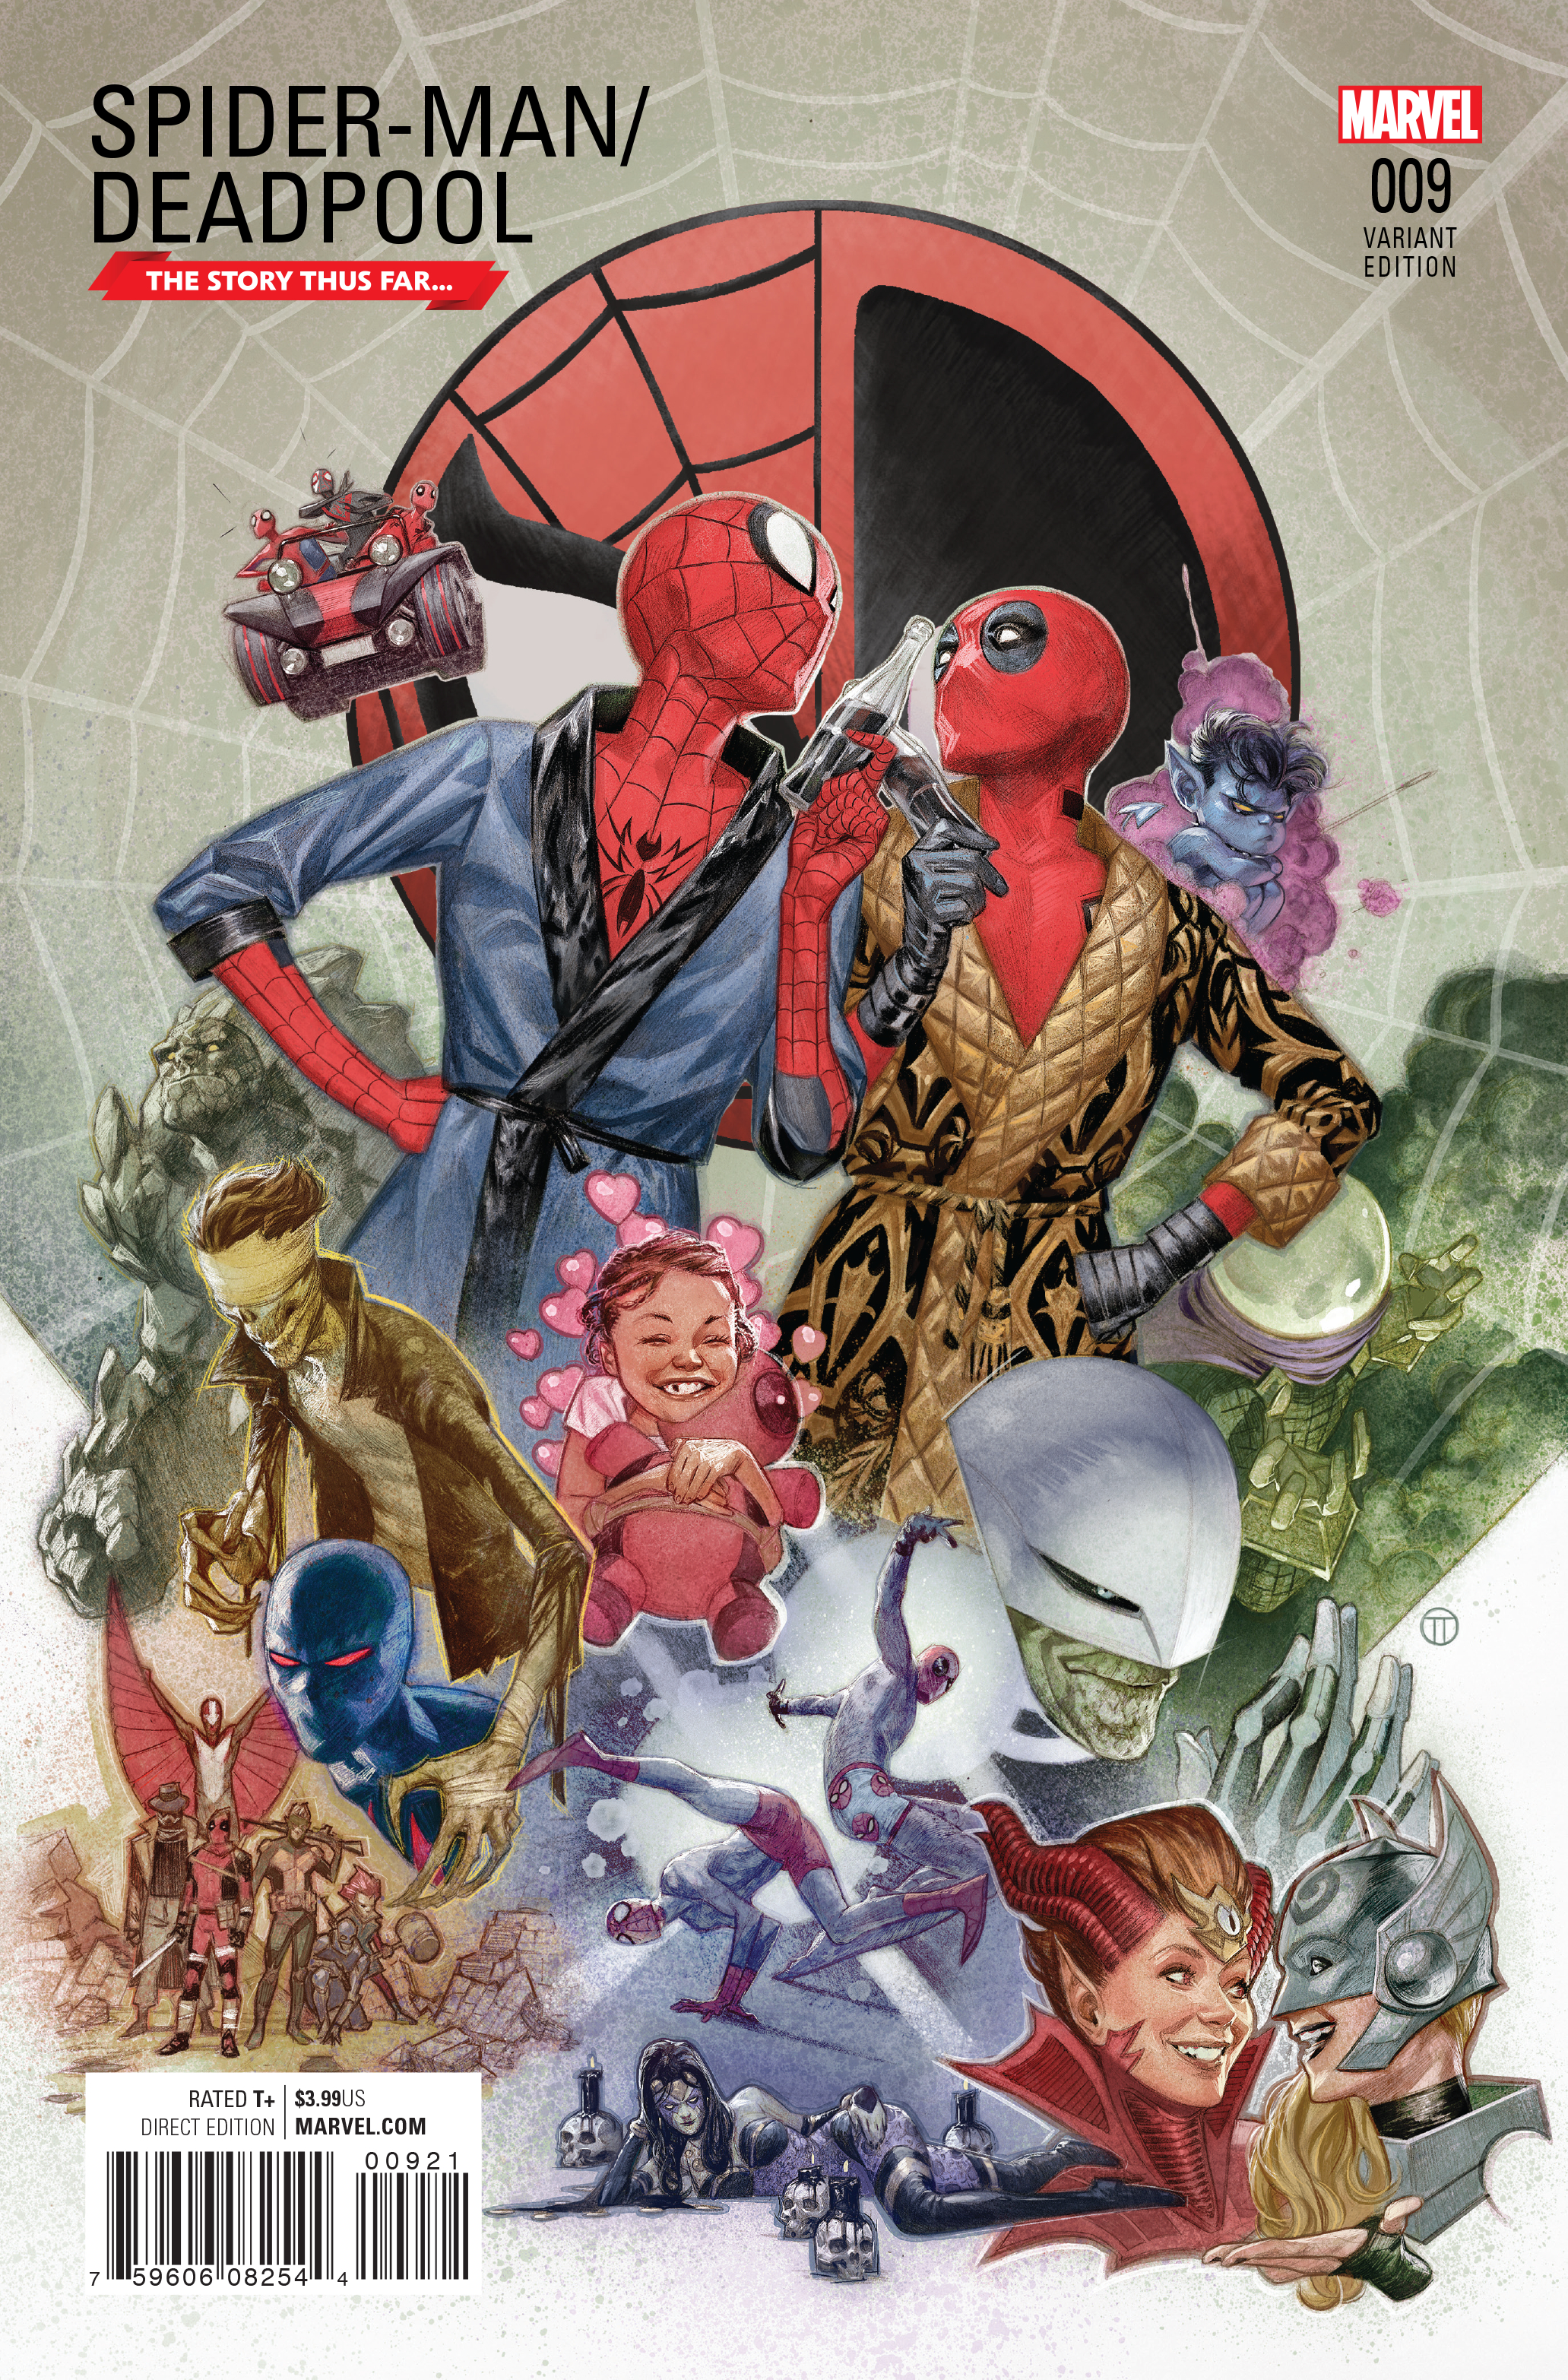 SPIDER-MAN DEADPOOL #9 TEDESCO STORY THUS FAR VAR